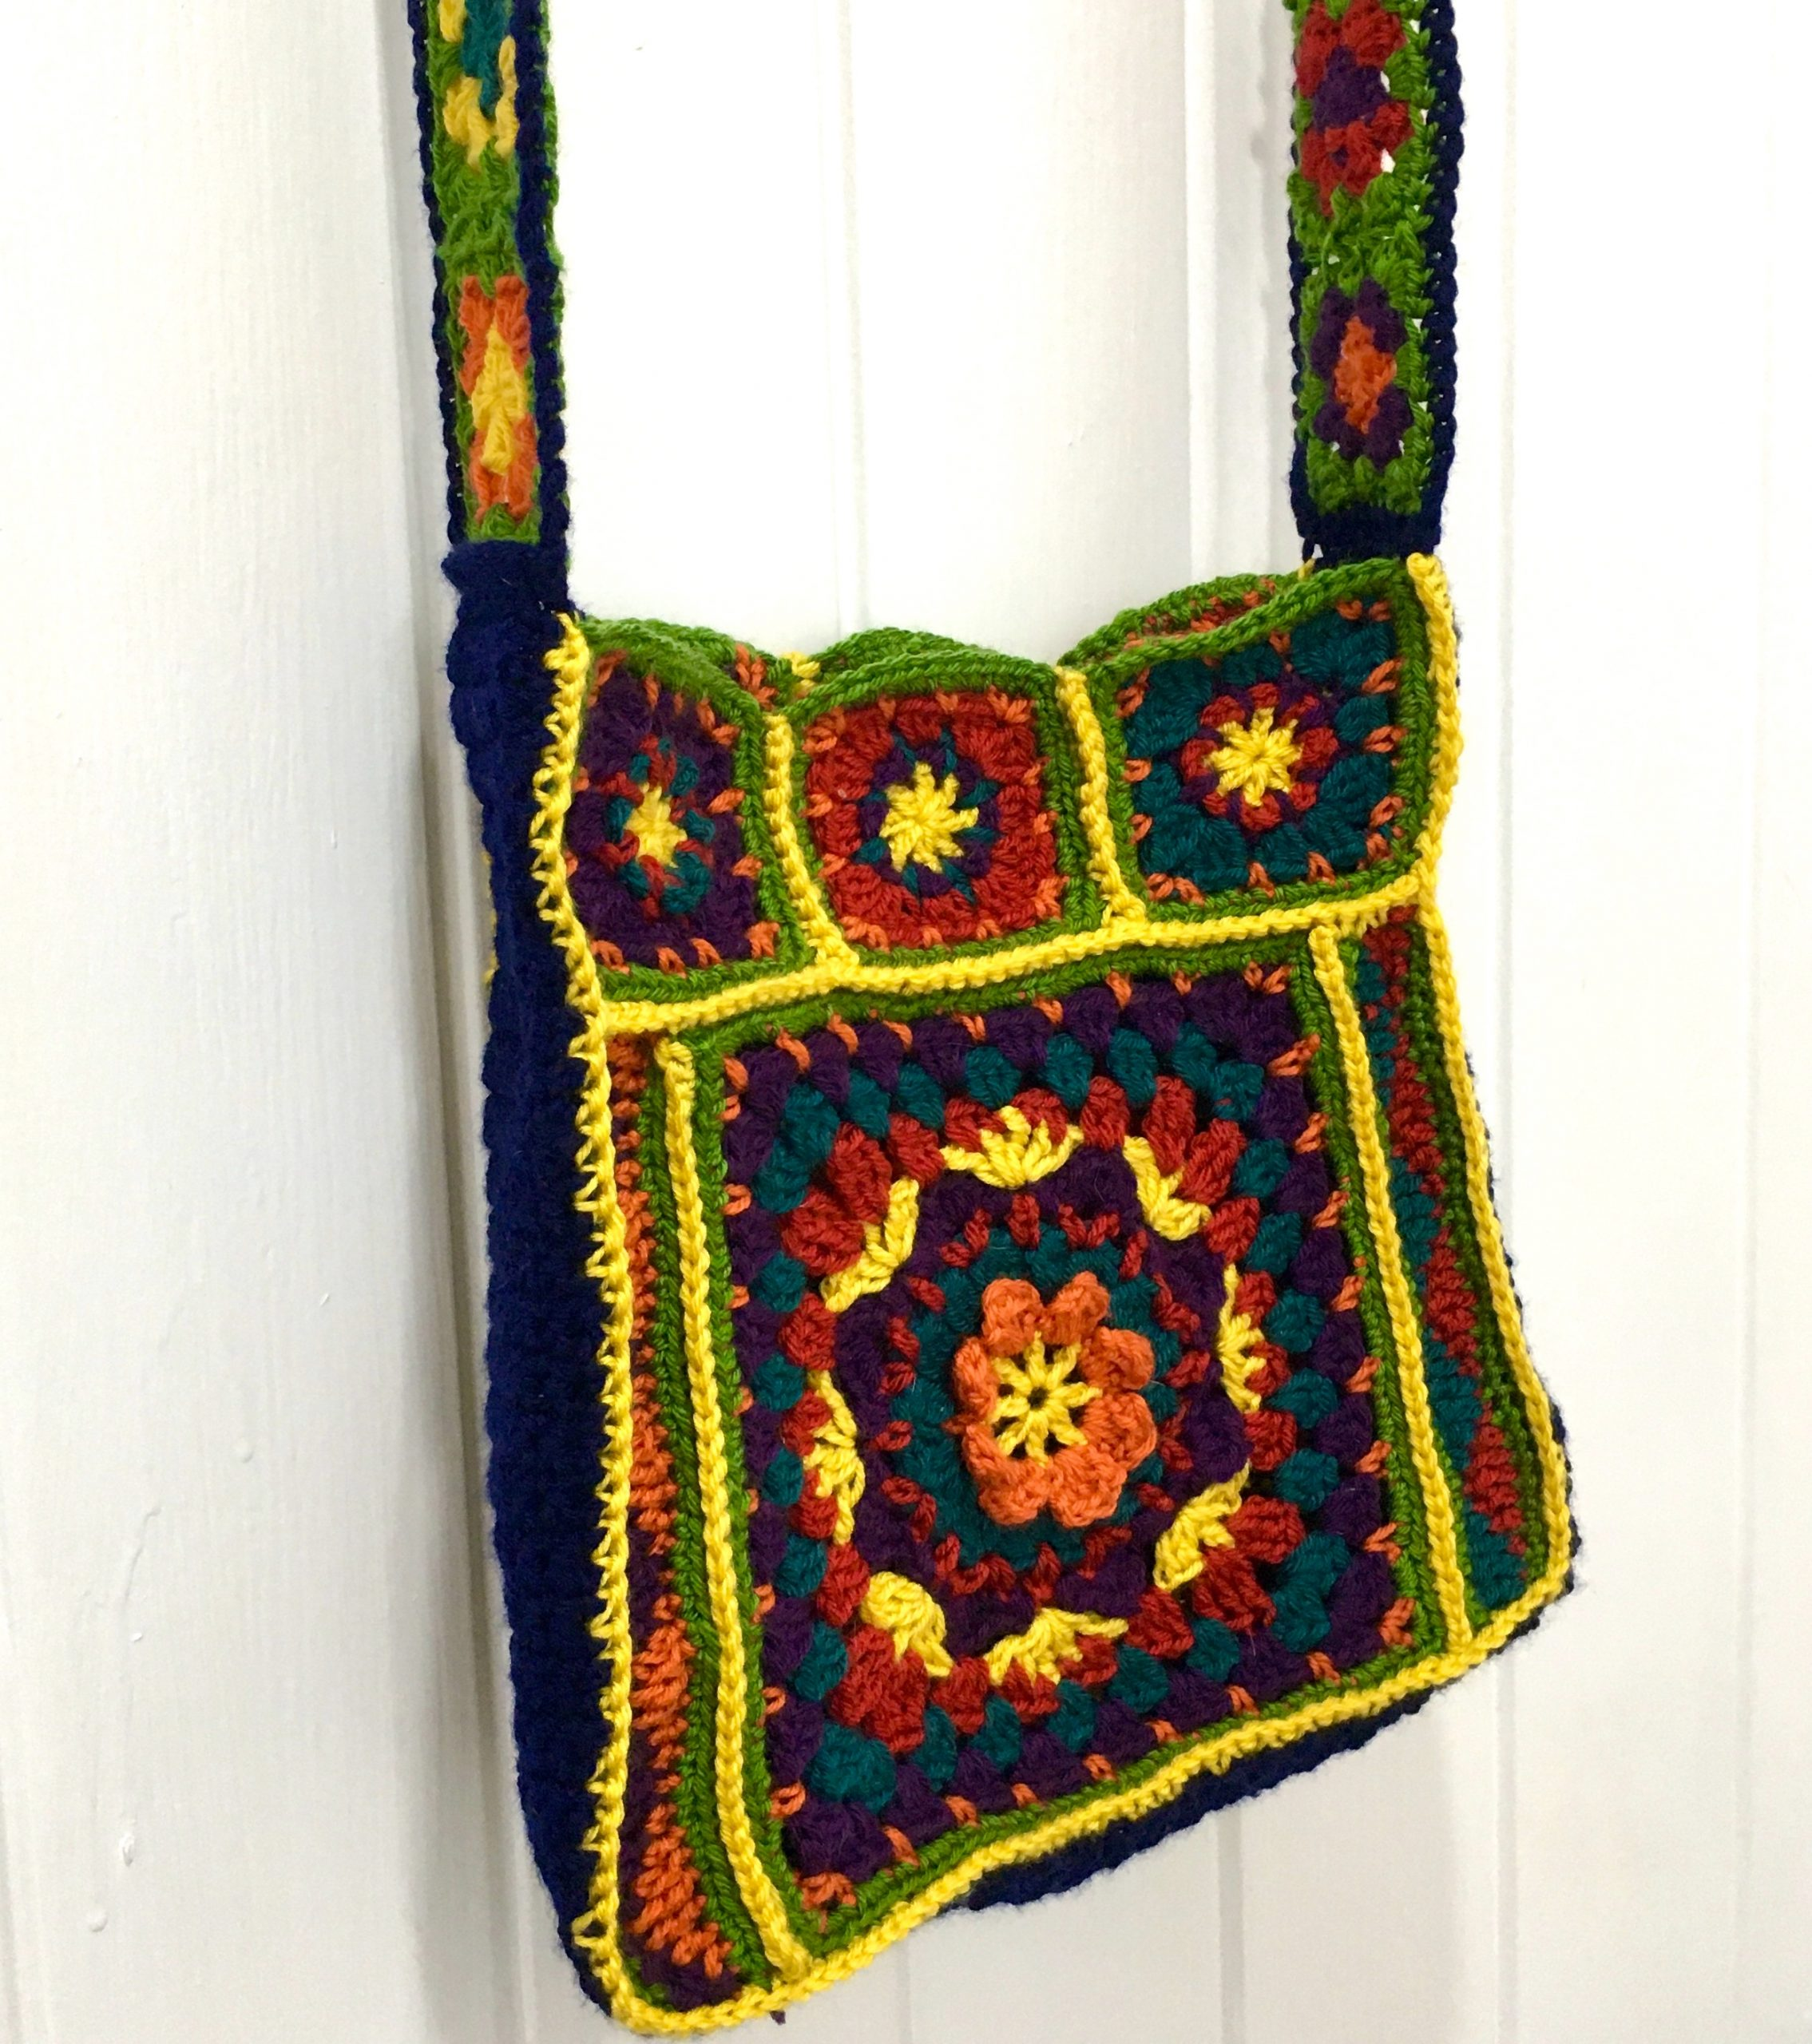 GRANNY-square bag on door